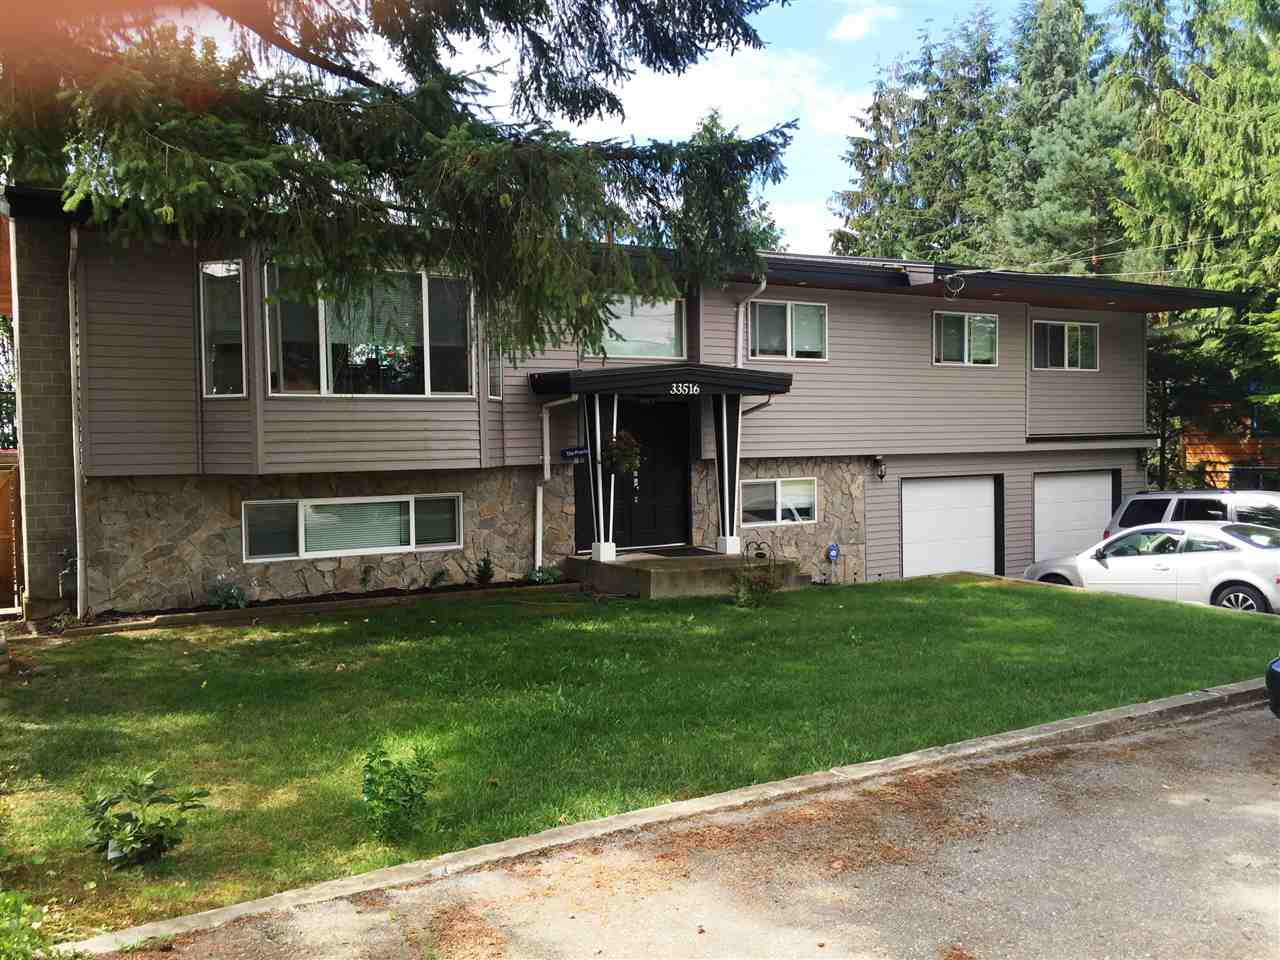 Main Photo: 33516 CHERRY Street in Mission: Mission BC House for sale : MLS®# R2094780